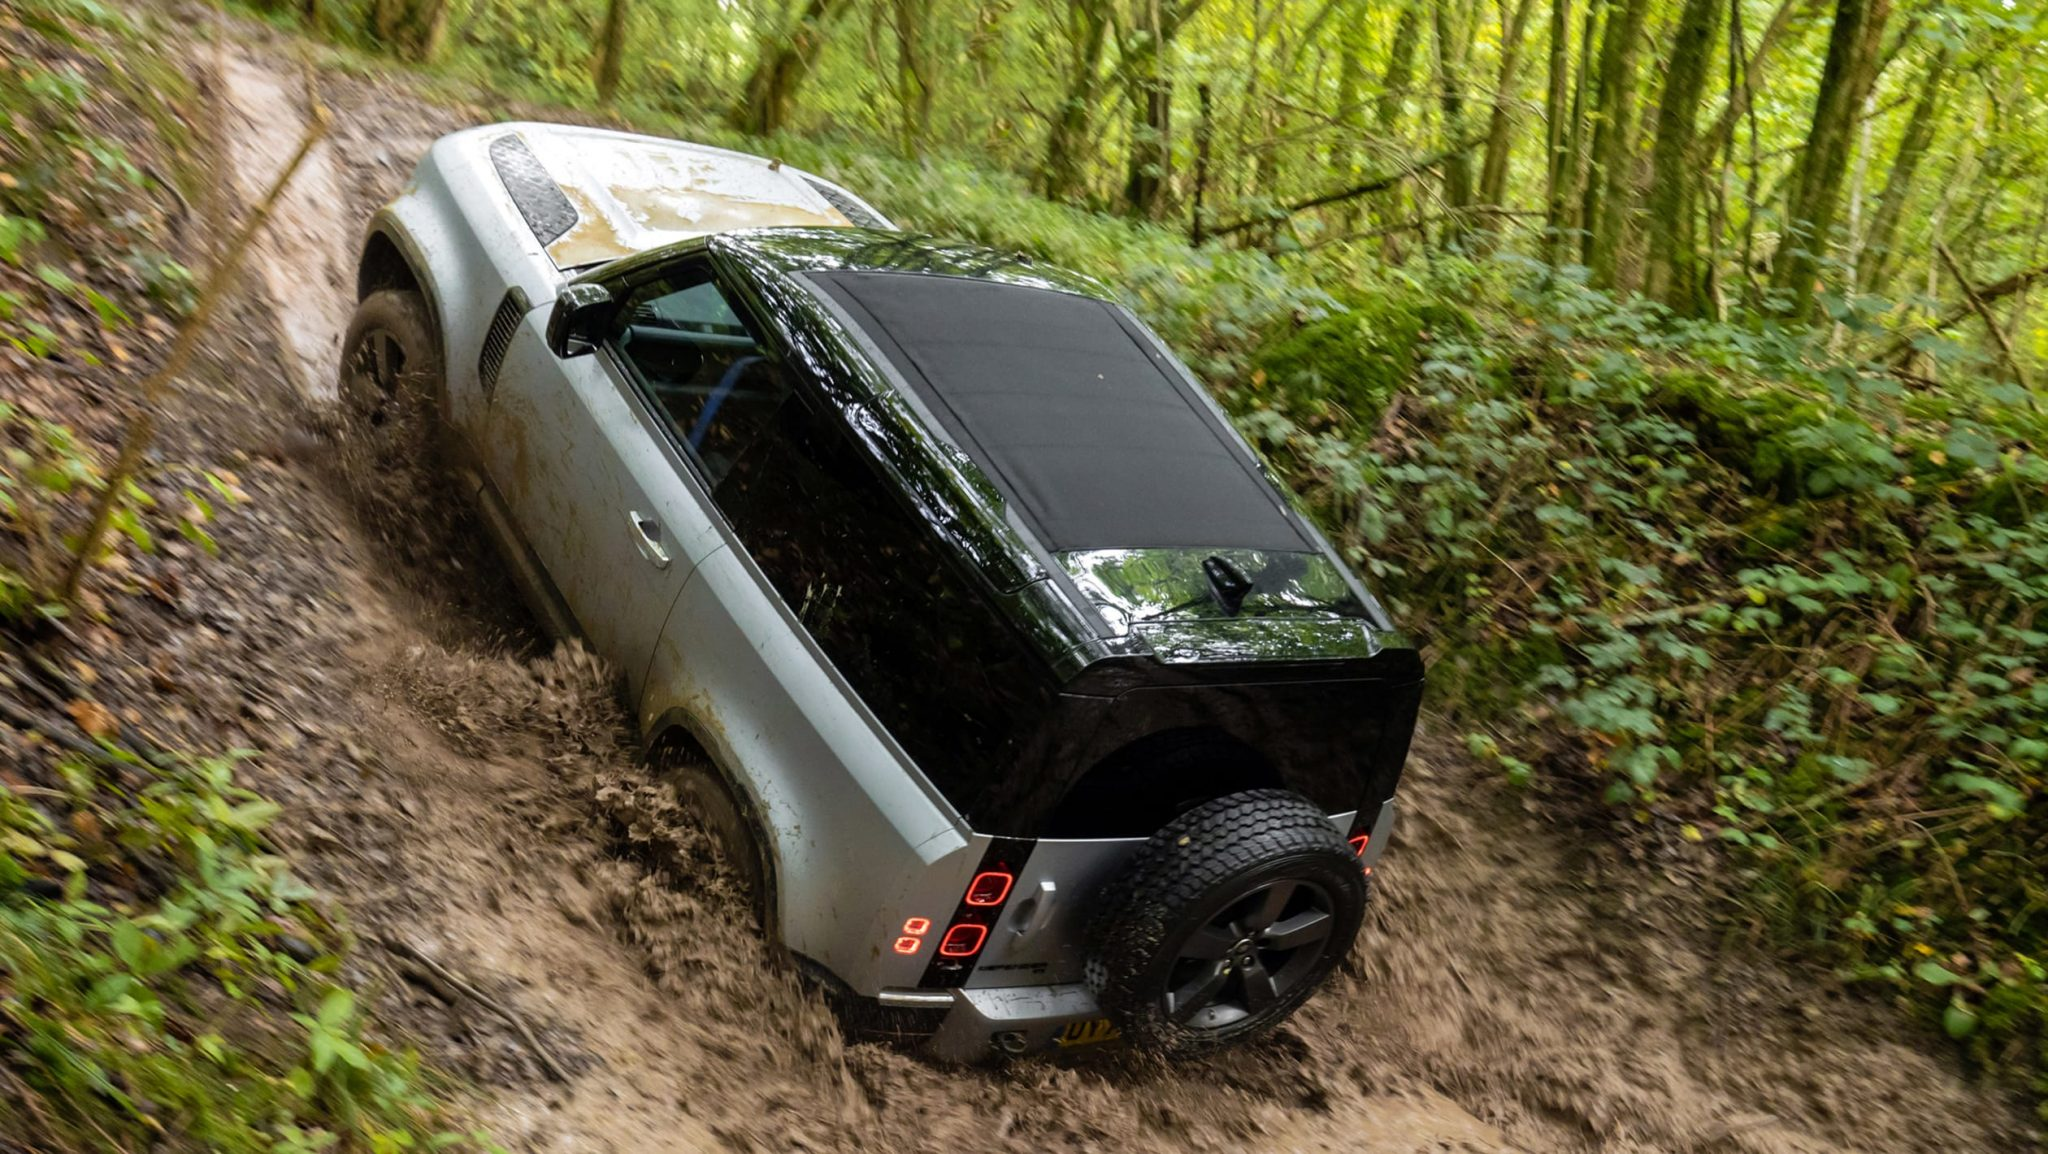 2021 Land Rover Defender 90 Off-Road Review - Automotive Daily